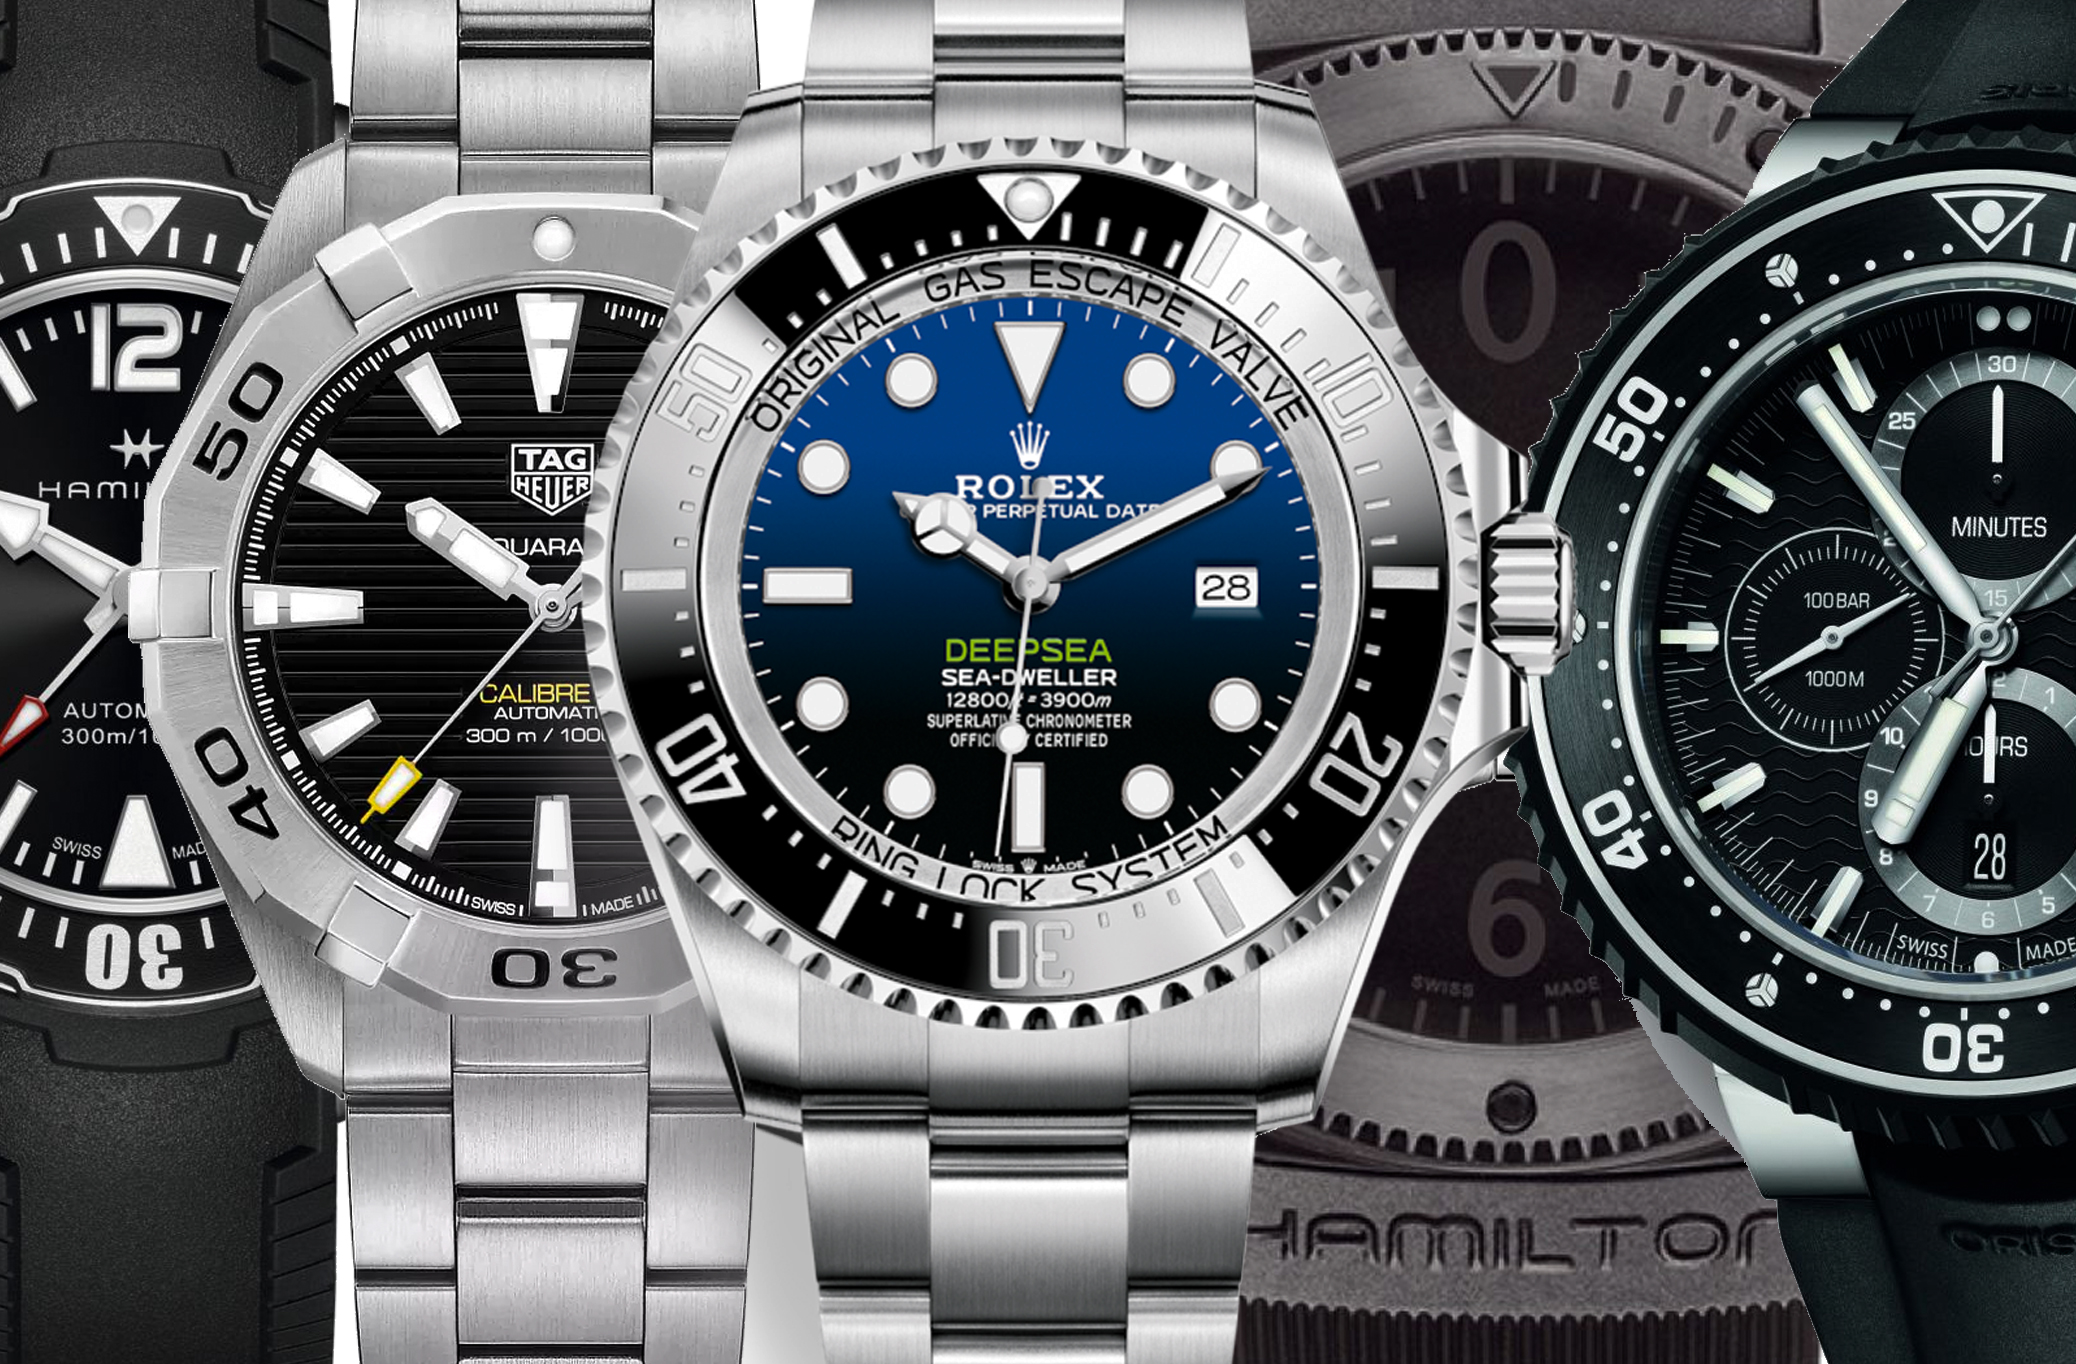 6 Best Waterproof Watches for Men To Invest In